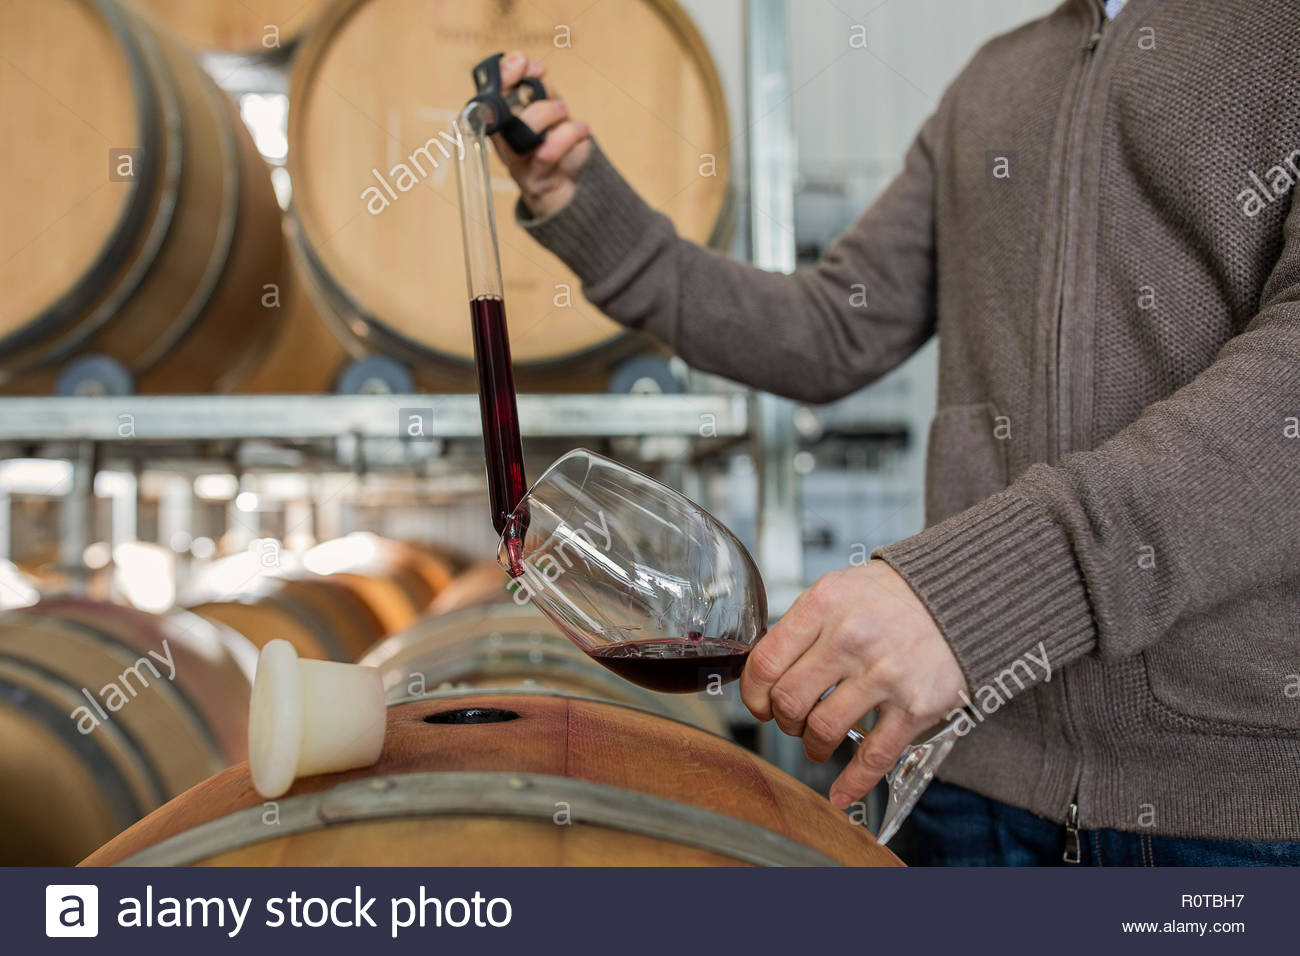 Winemaker checking wine in barrels at vineyard - Stock Image